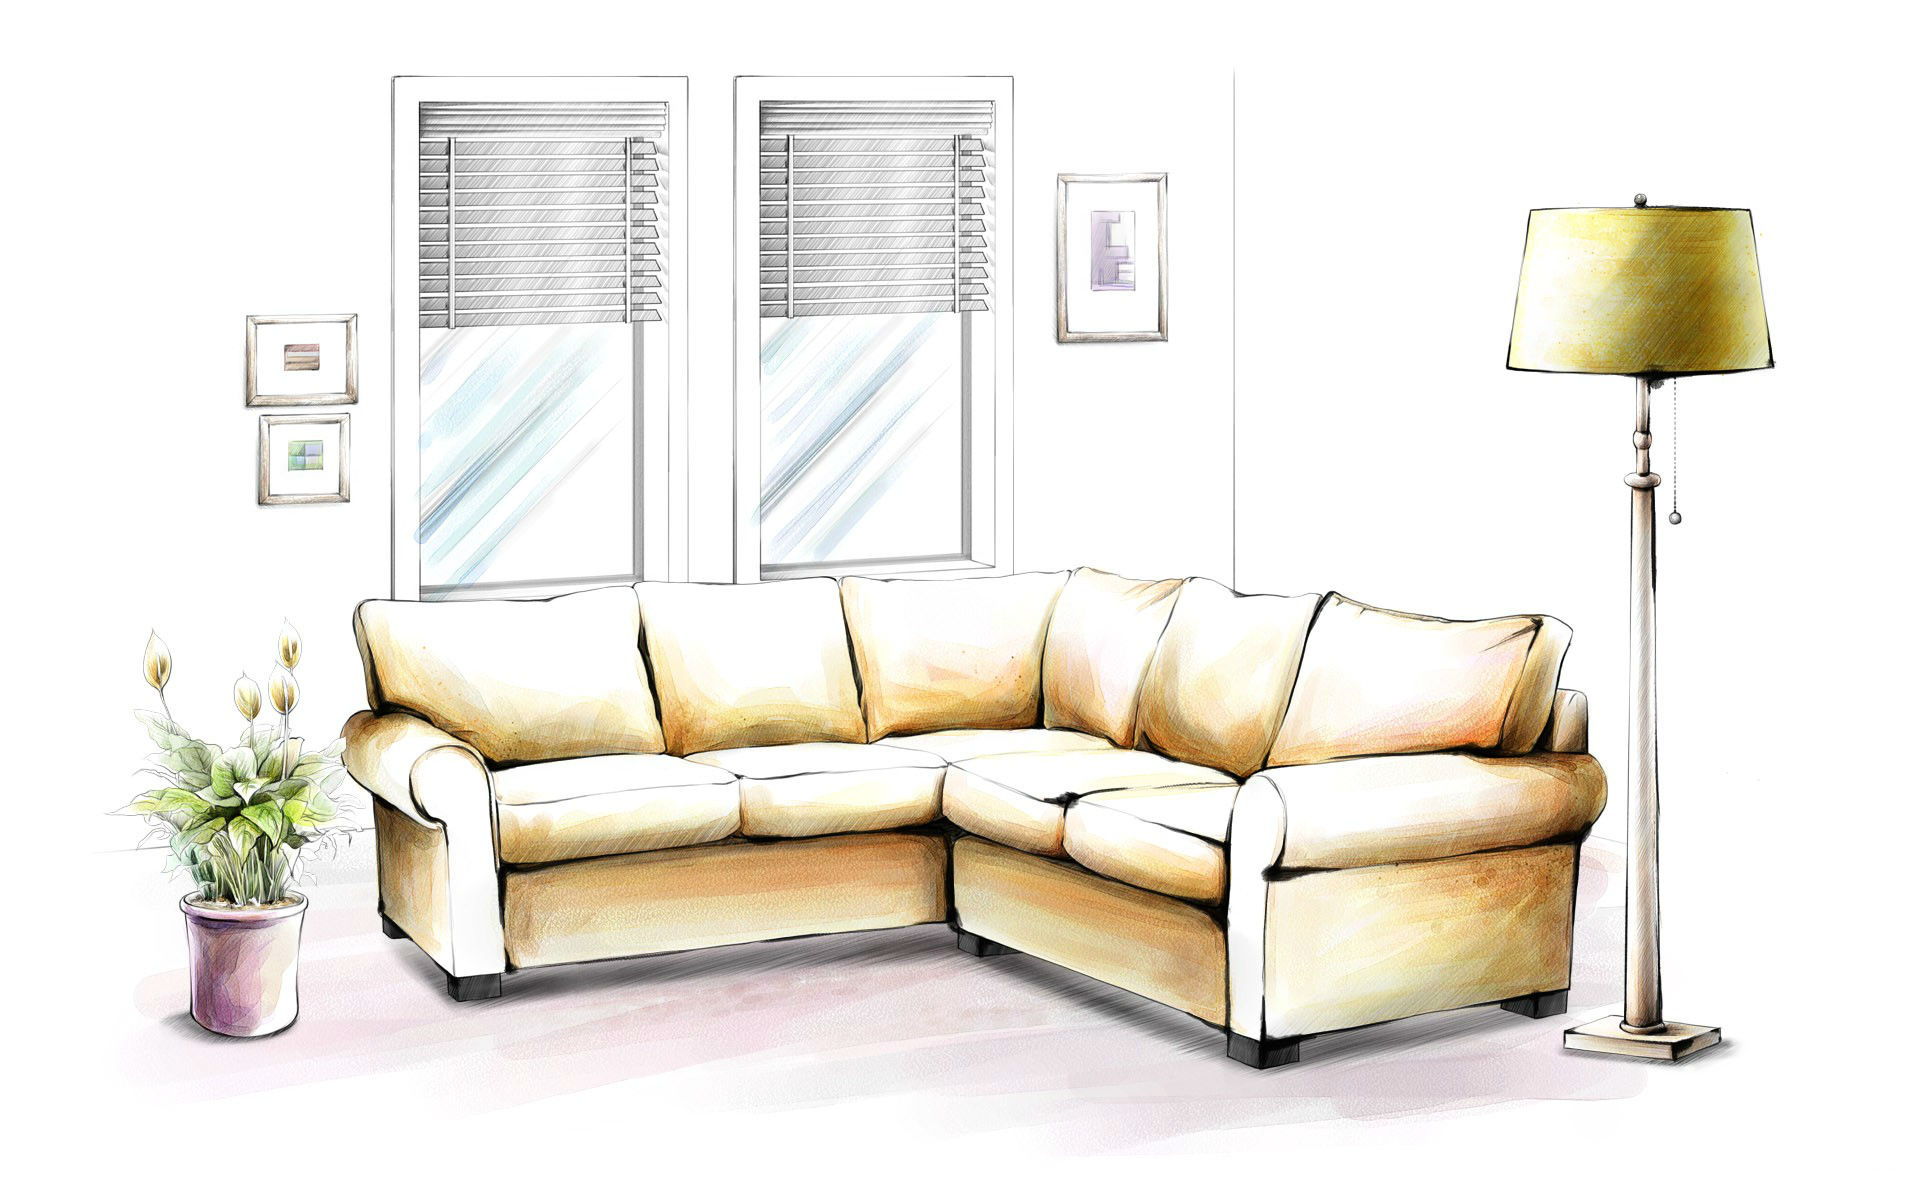 Furniture full hd wallpaper and background image for Interior designs sketches